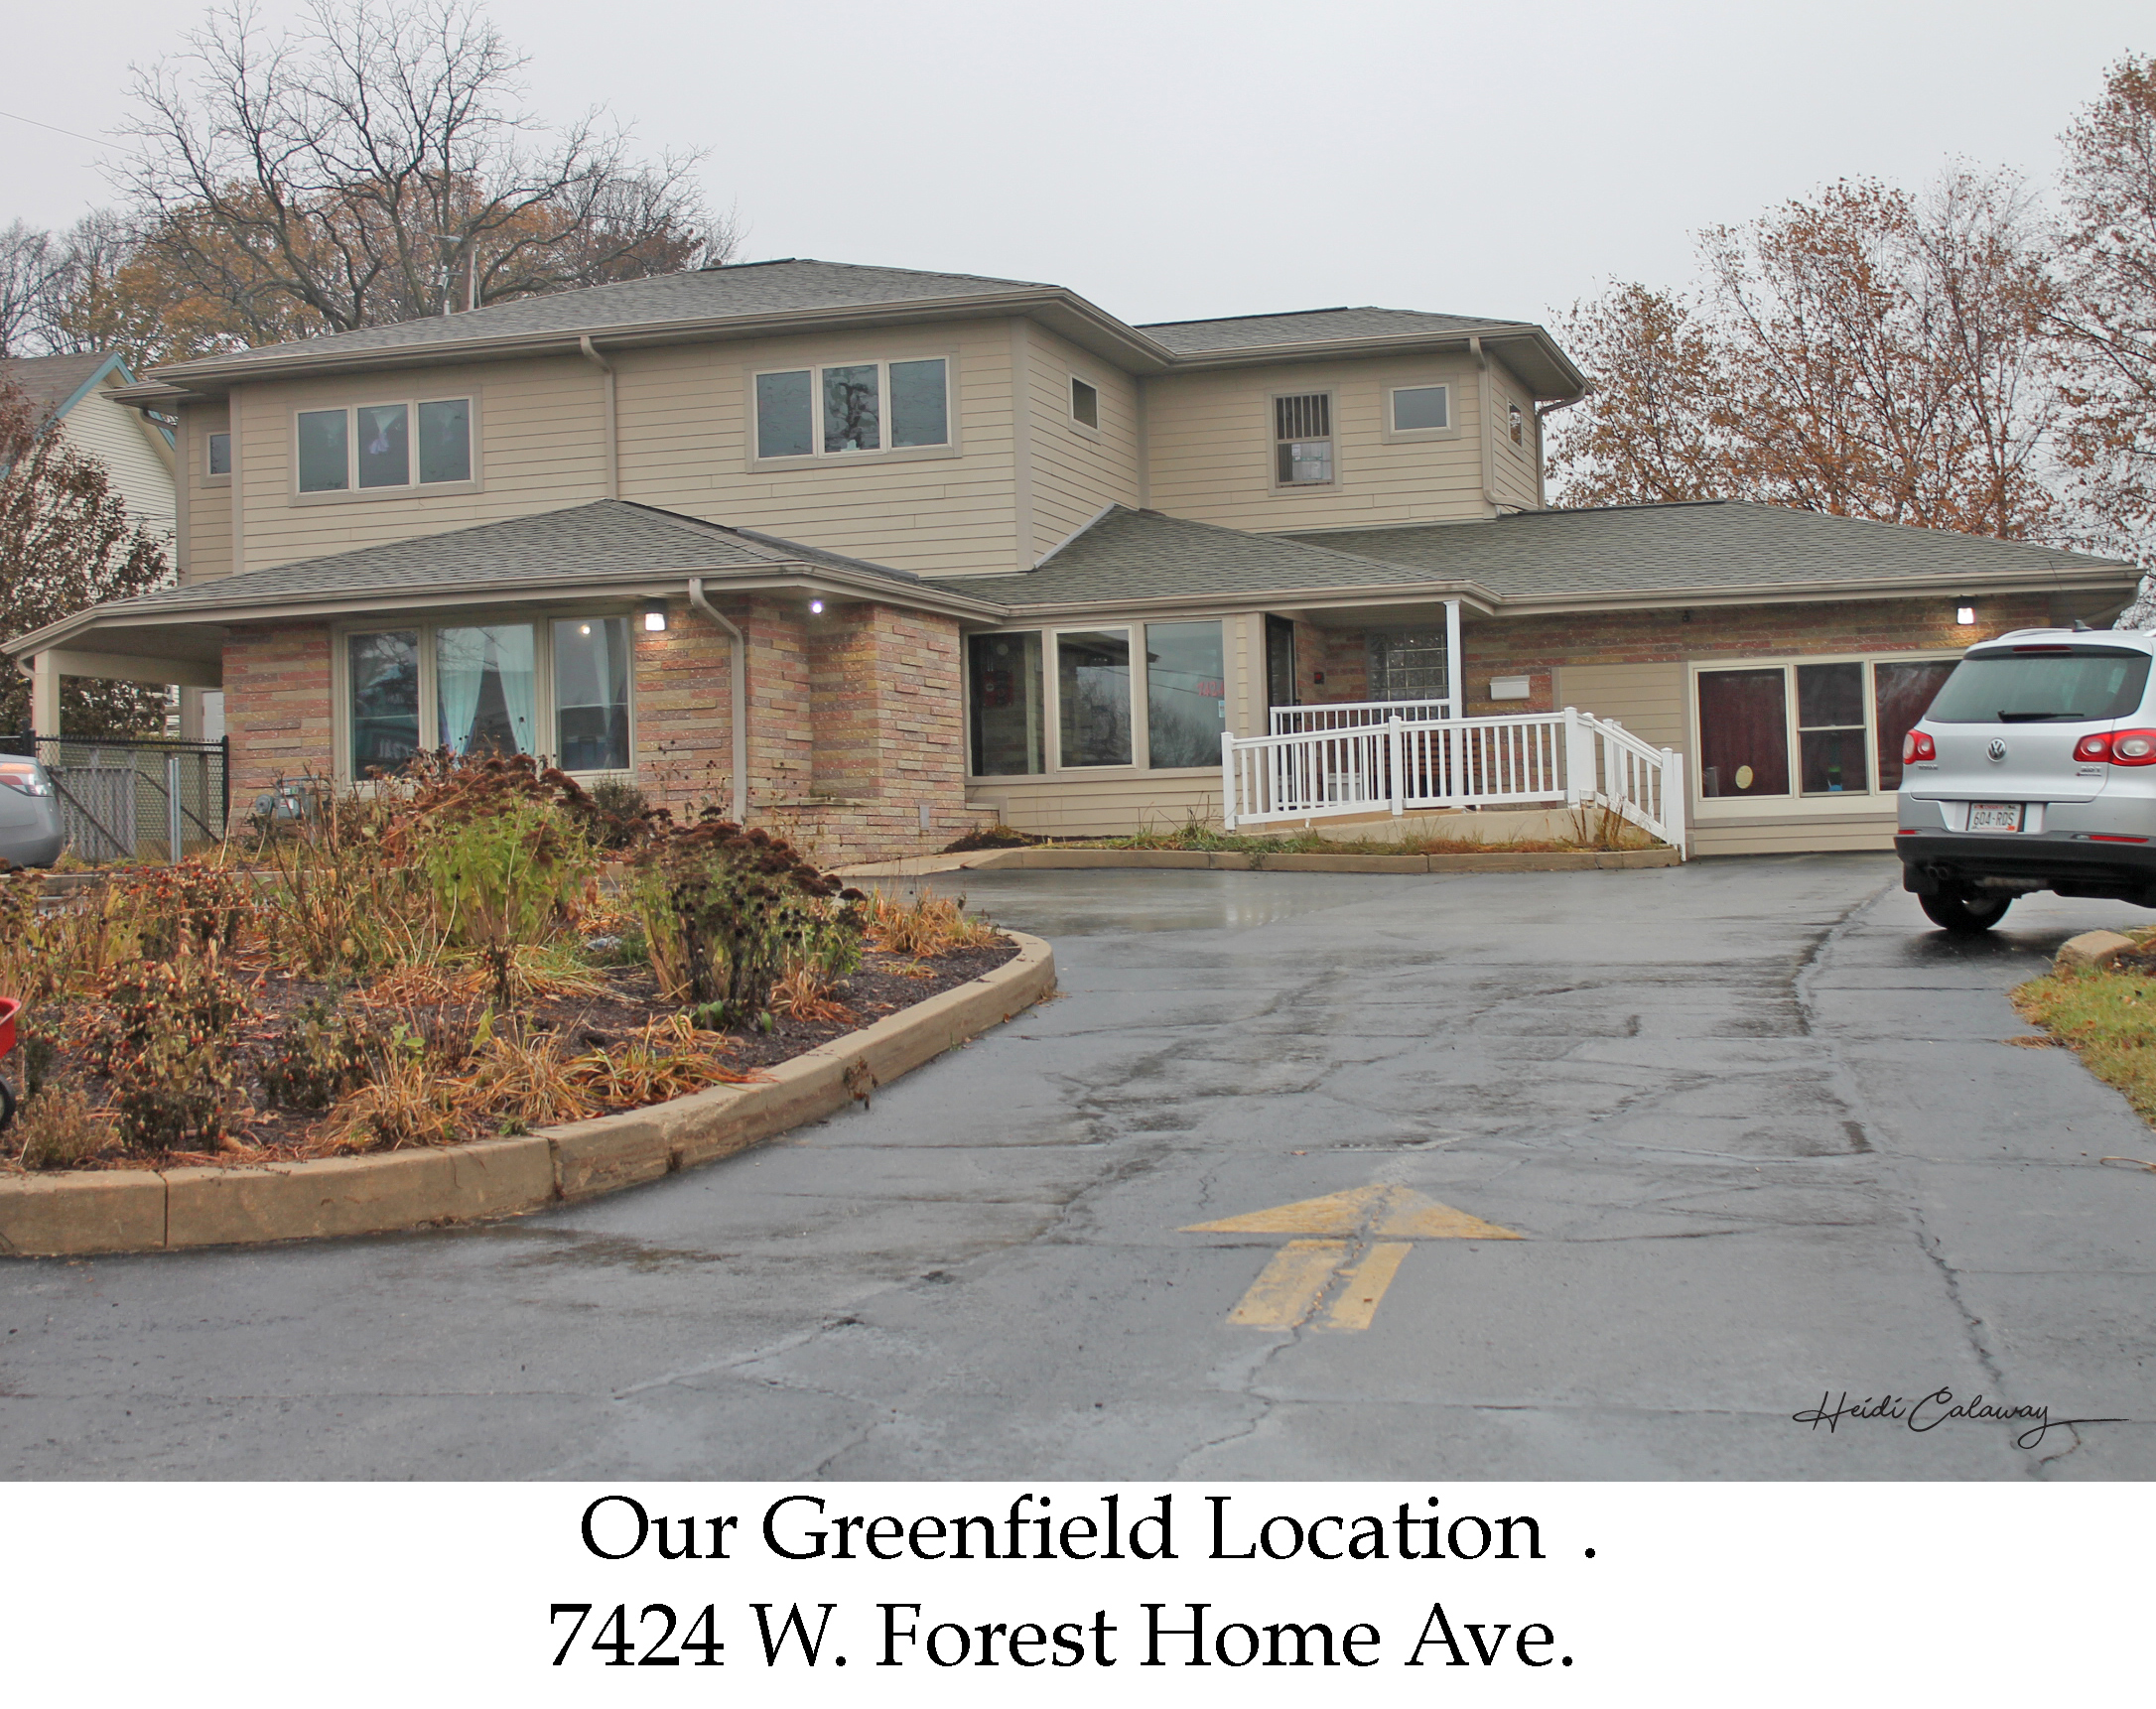 Greenfield location